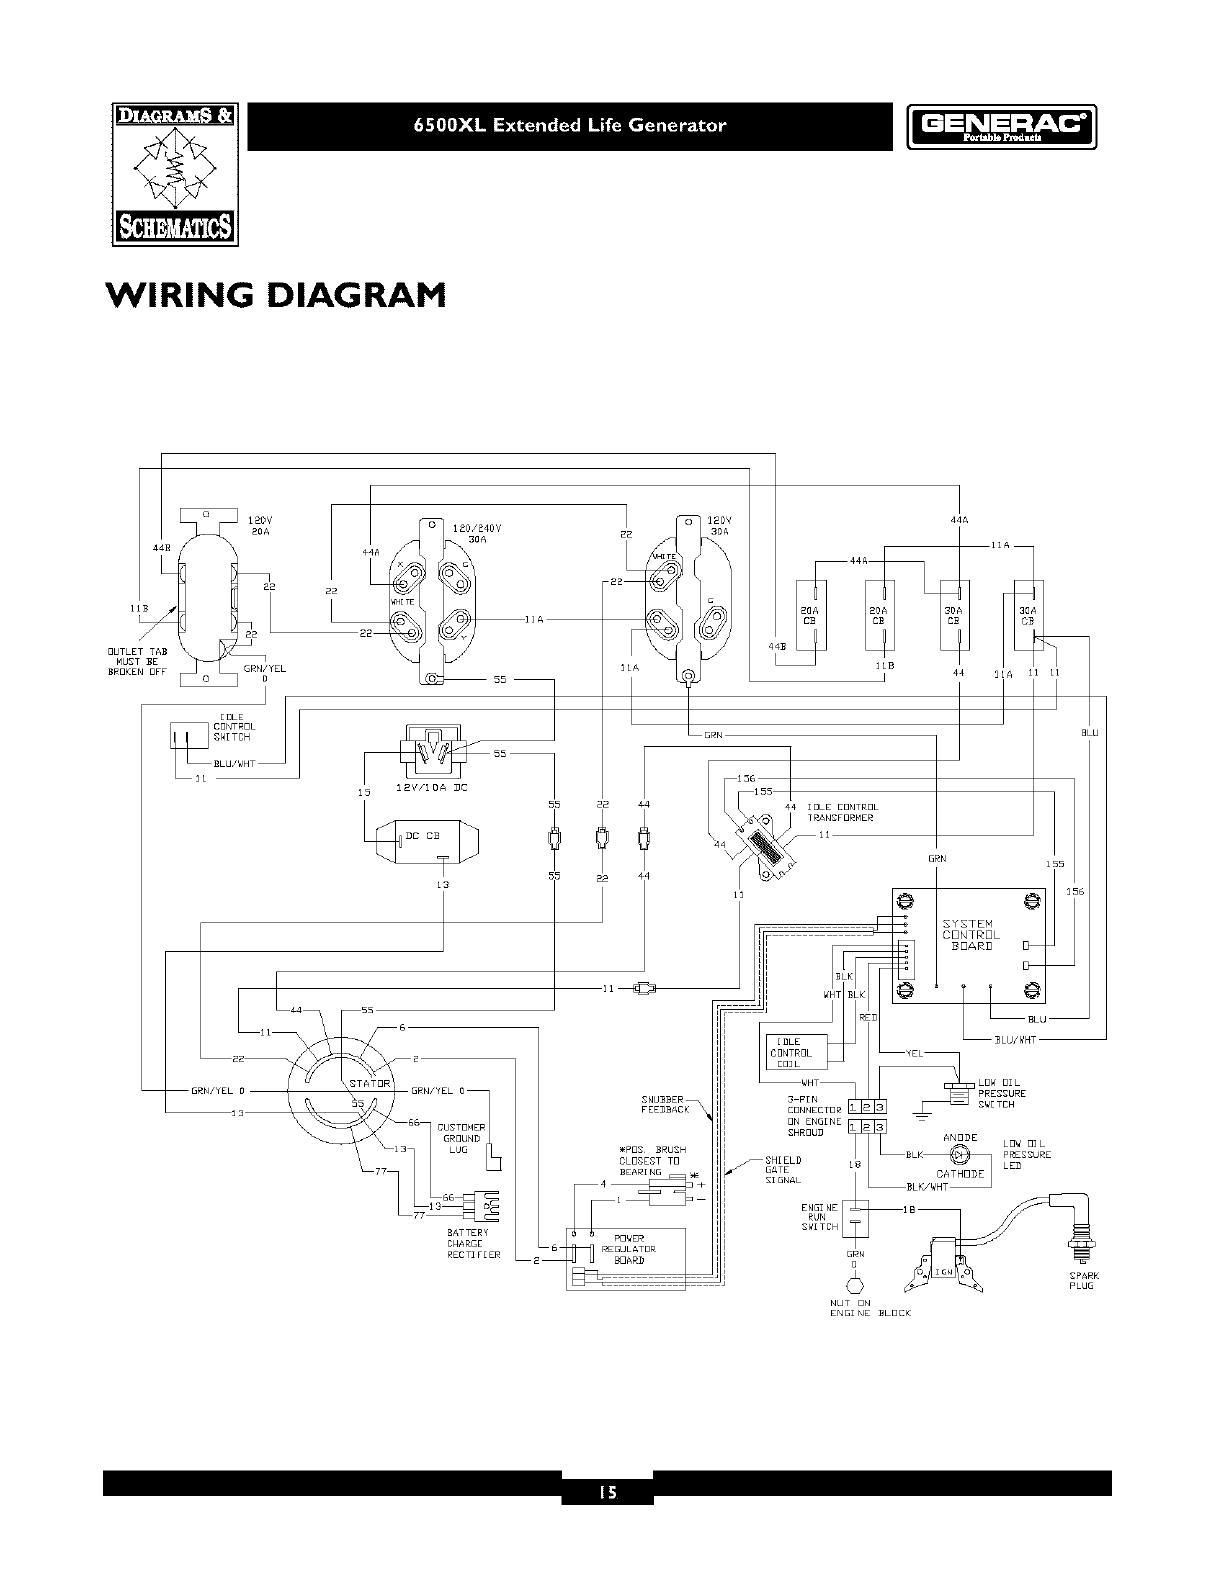 abacbfe4 09c9 46f3 b904 b7a0ca98baaa bgf page 15 of generac portable generator 6500xl user guide abac air compressor wiring diagram at arjmand.co